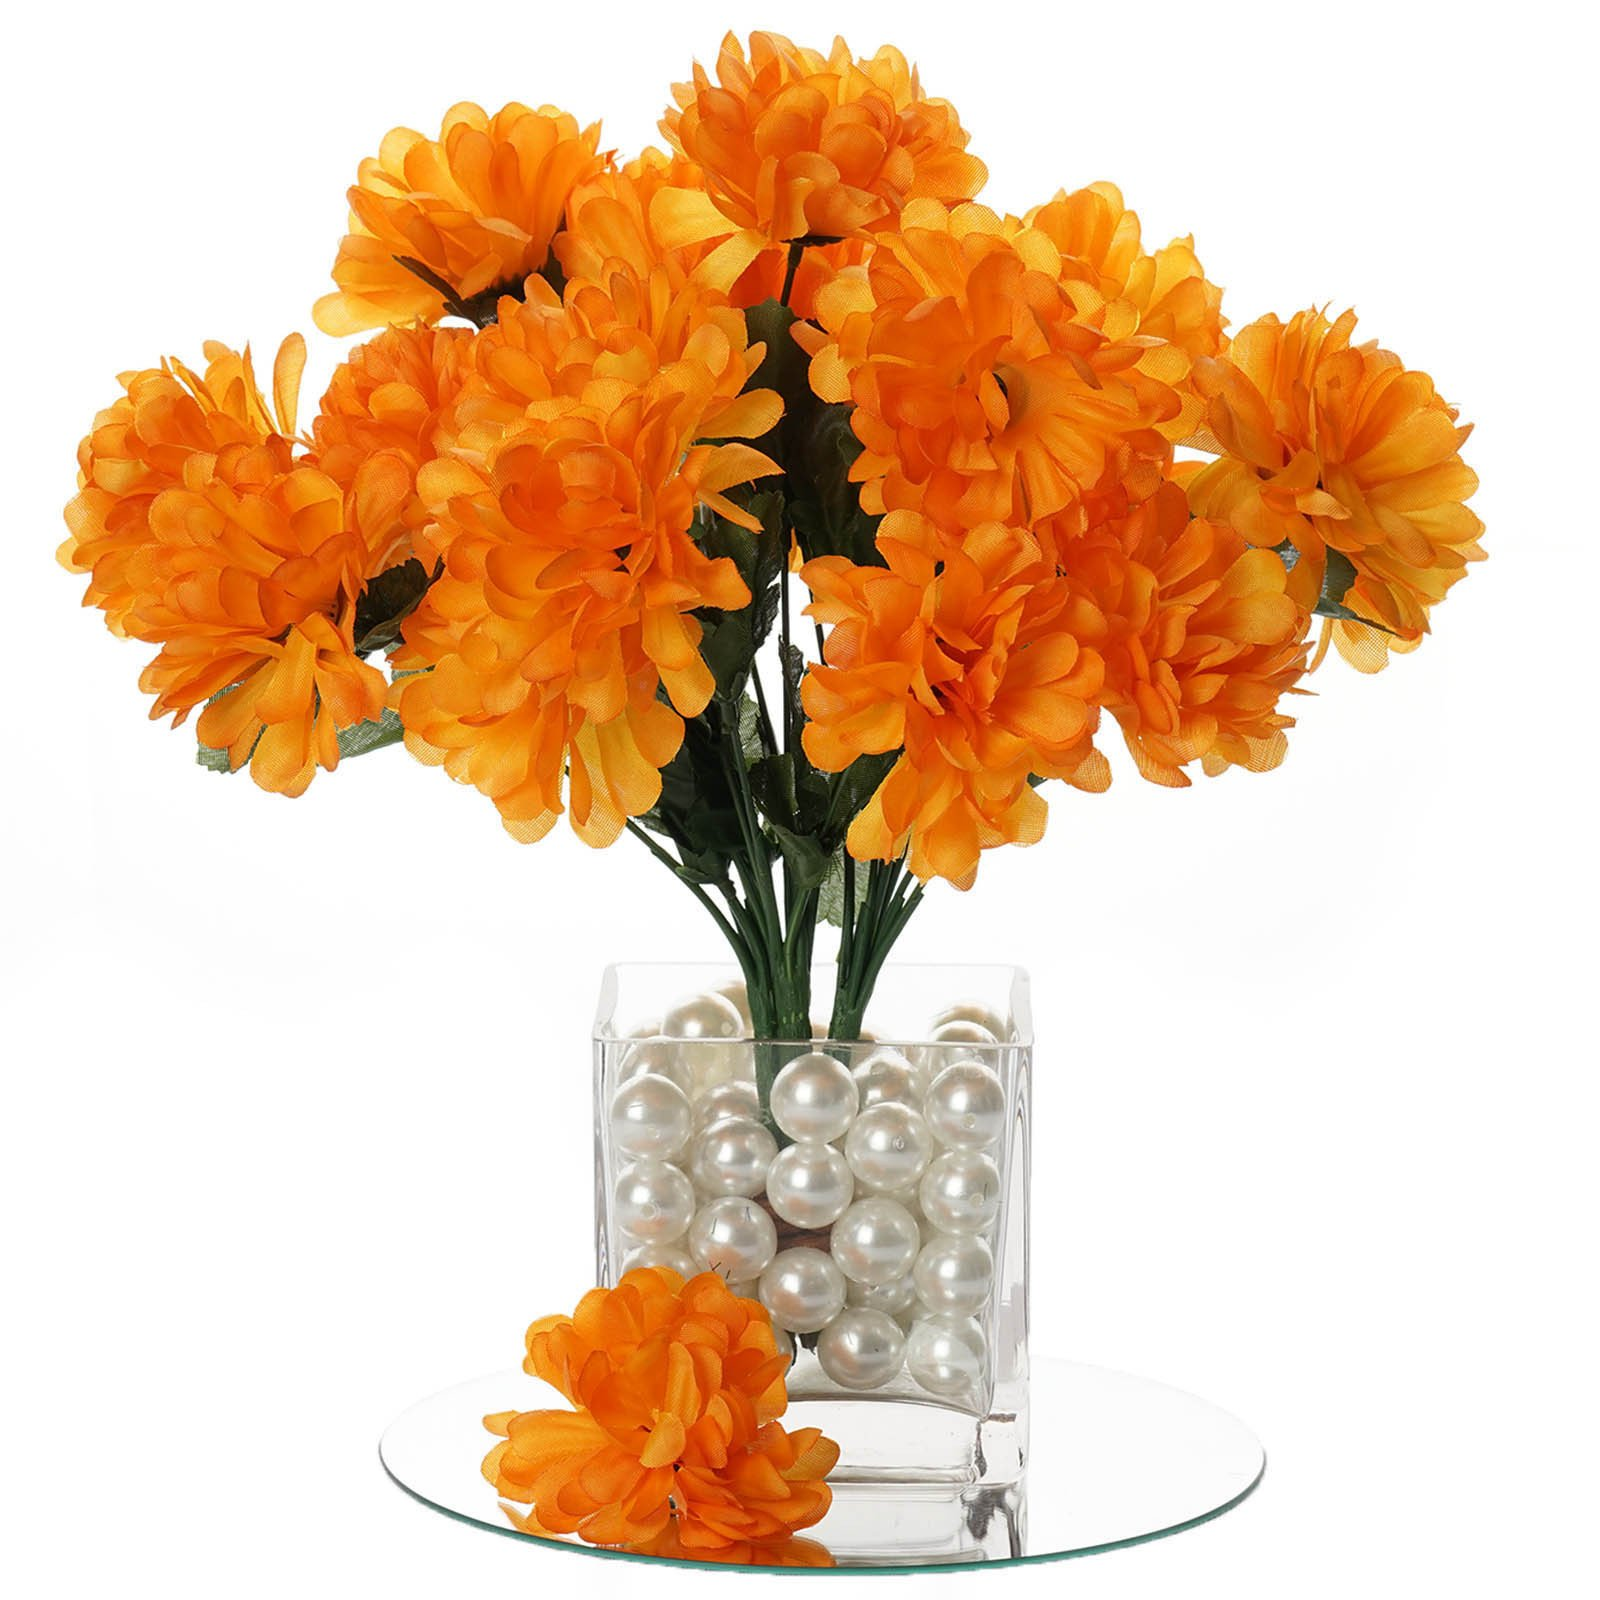 BalsaCircle 84 Chrysanthemum Mums Balls Silk Flowers - DIY Home Wedding Party Artificial Bouquets Arrangements Centerpieces